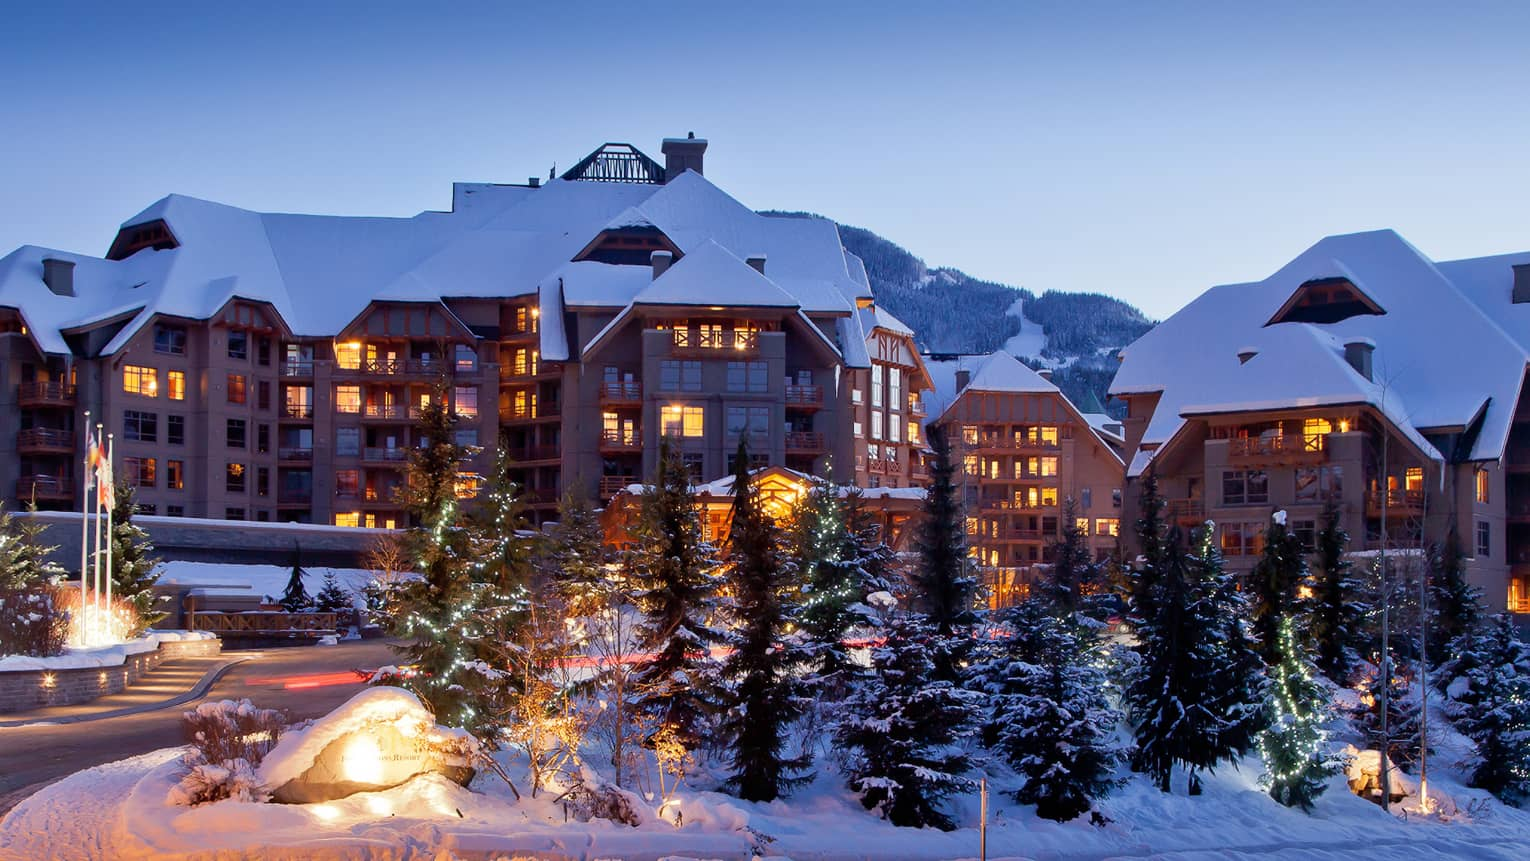 Snowy Four Seasons Hotel Whistler ski lodge at dusk with illuminated windows, snow-covered trees